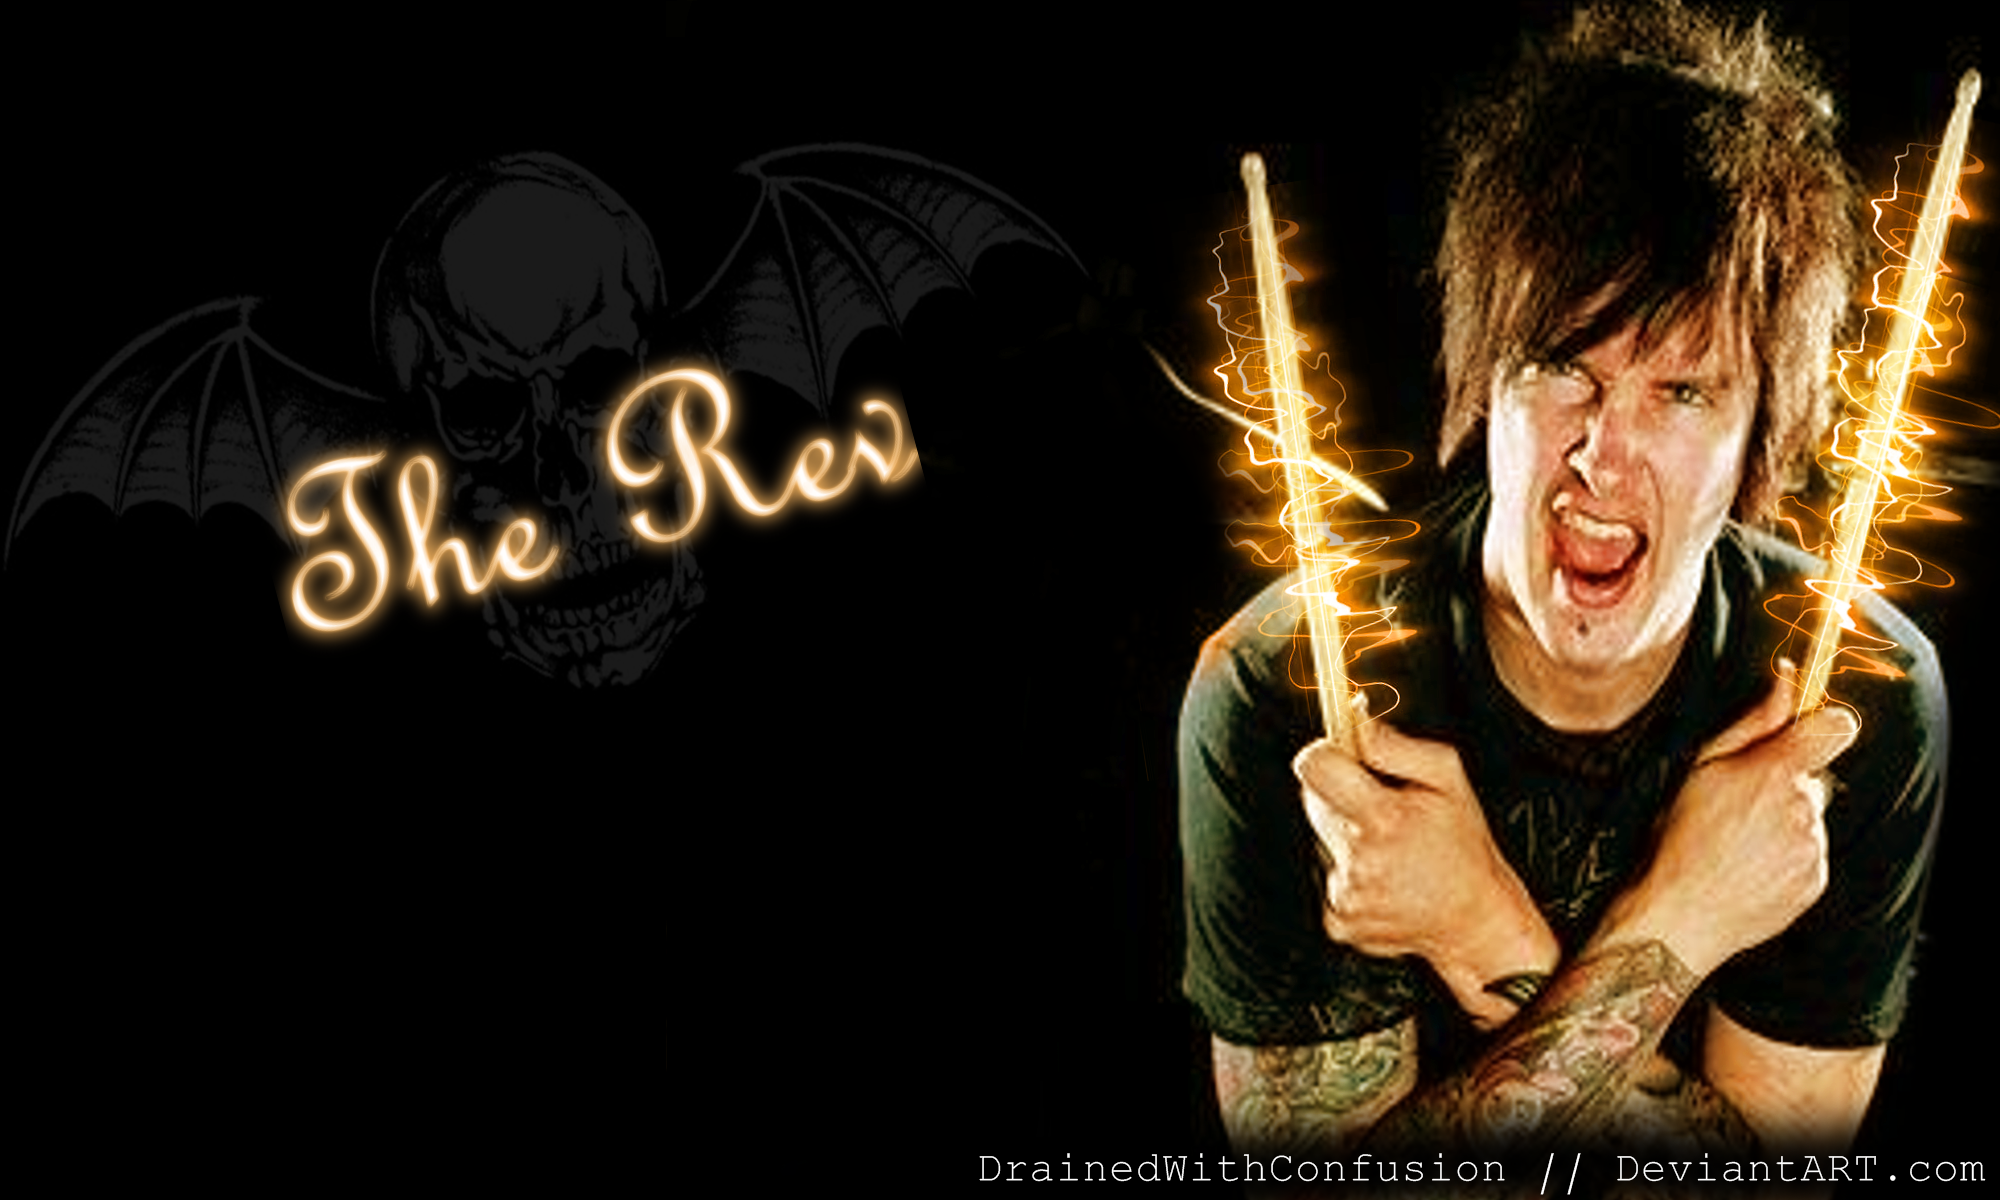 The rev wallpaper 1 by drainedwithconfusion on deviantart drainedwithconfusion the rev wallpaper 1 by drainedwithconfusion voltagebd Gallery